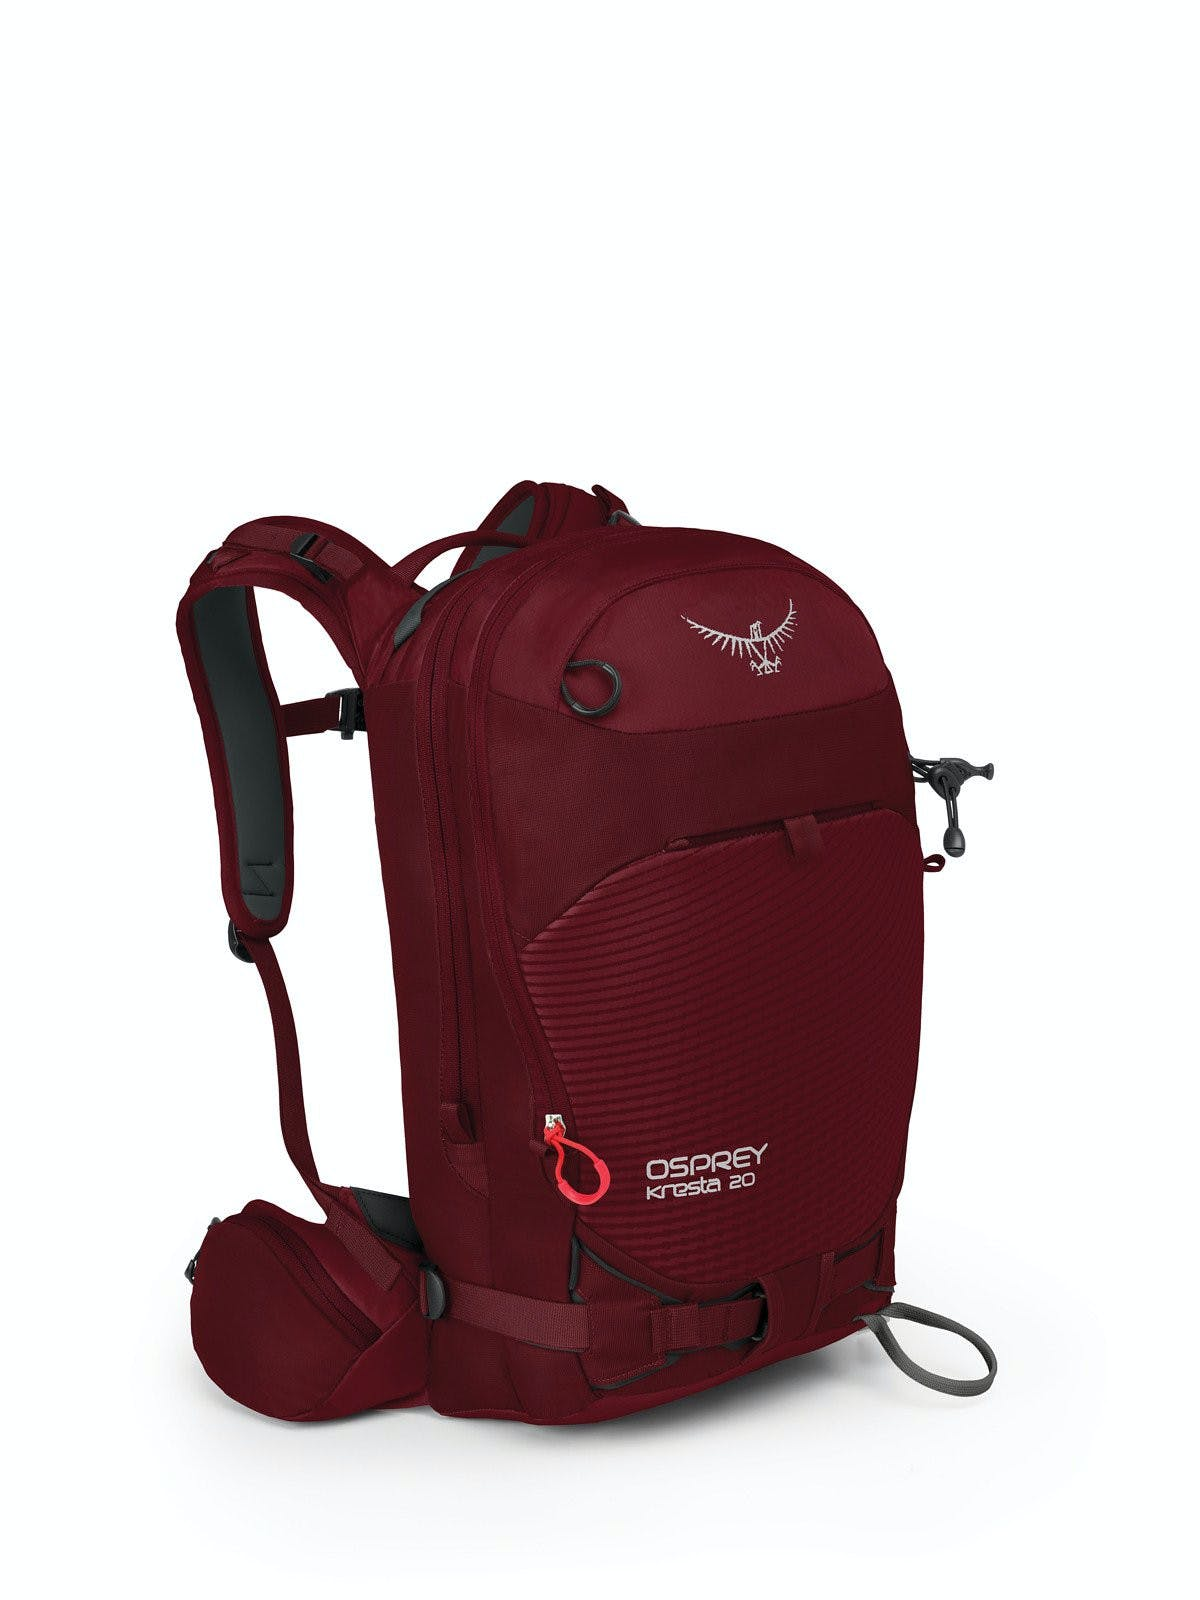 OSPREY - KRESTA 20 WMNS PACK - SMALL - MD - Rosewood Red